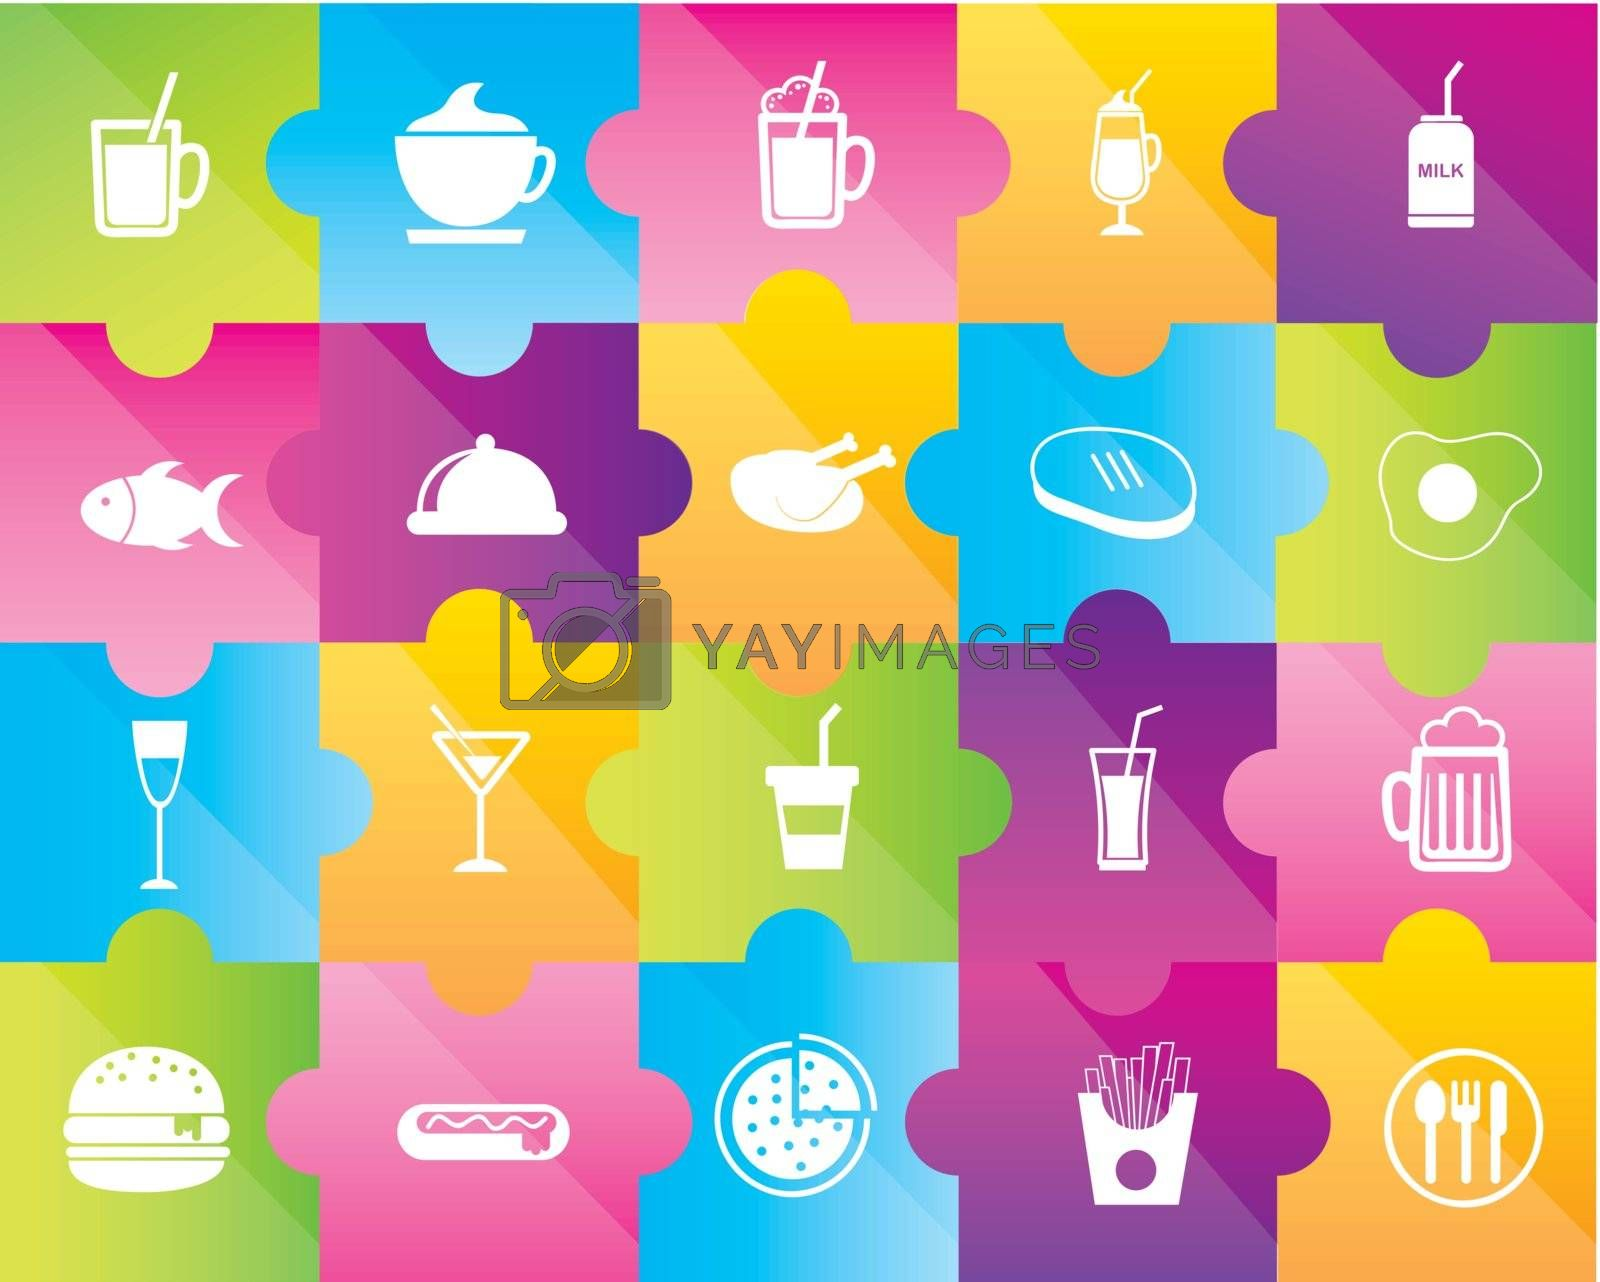 icons of drinks and fast food over colors background